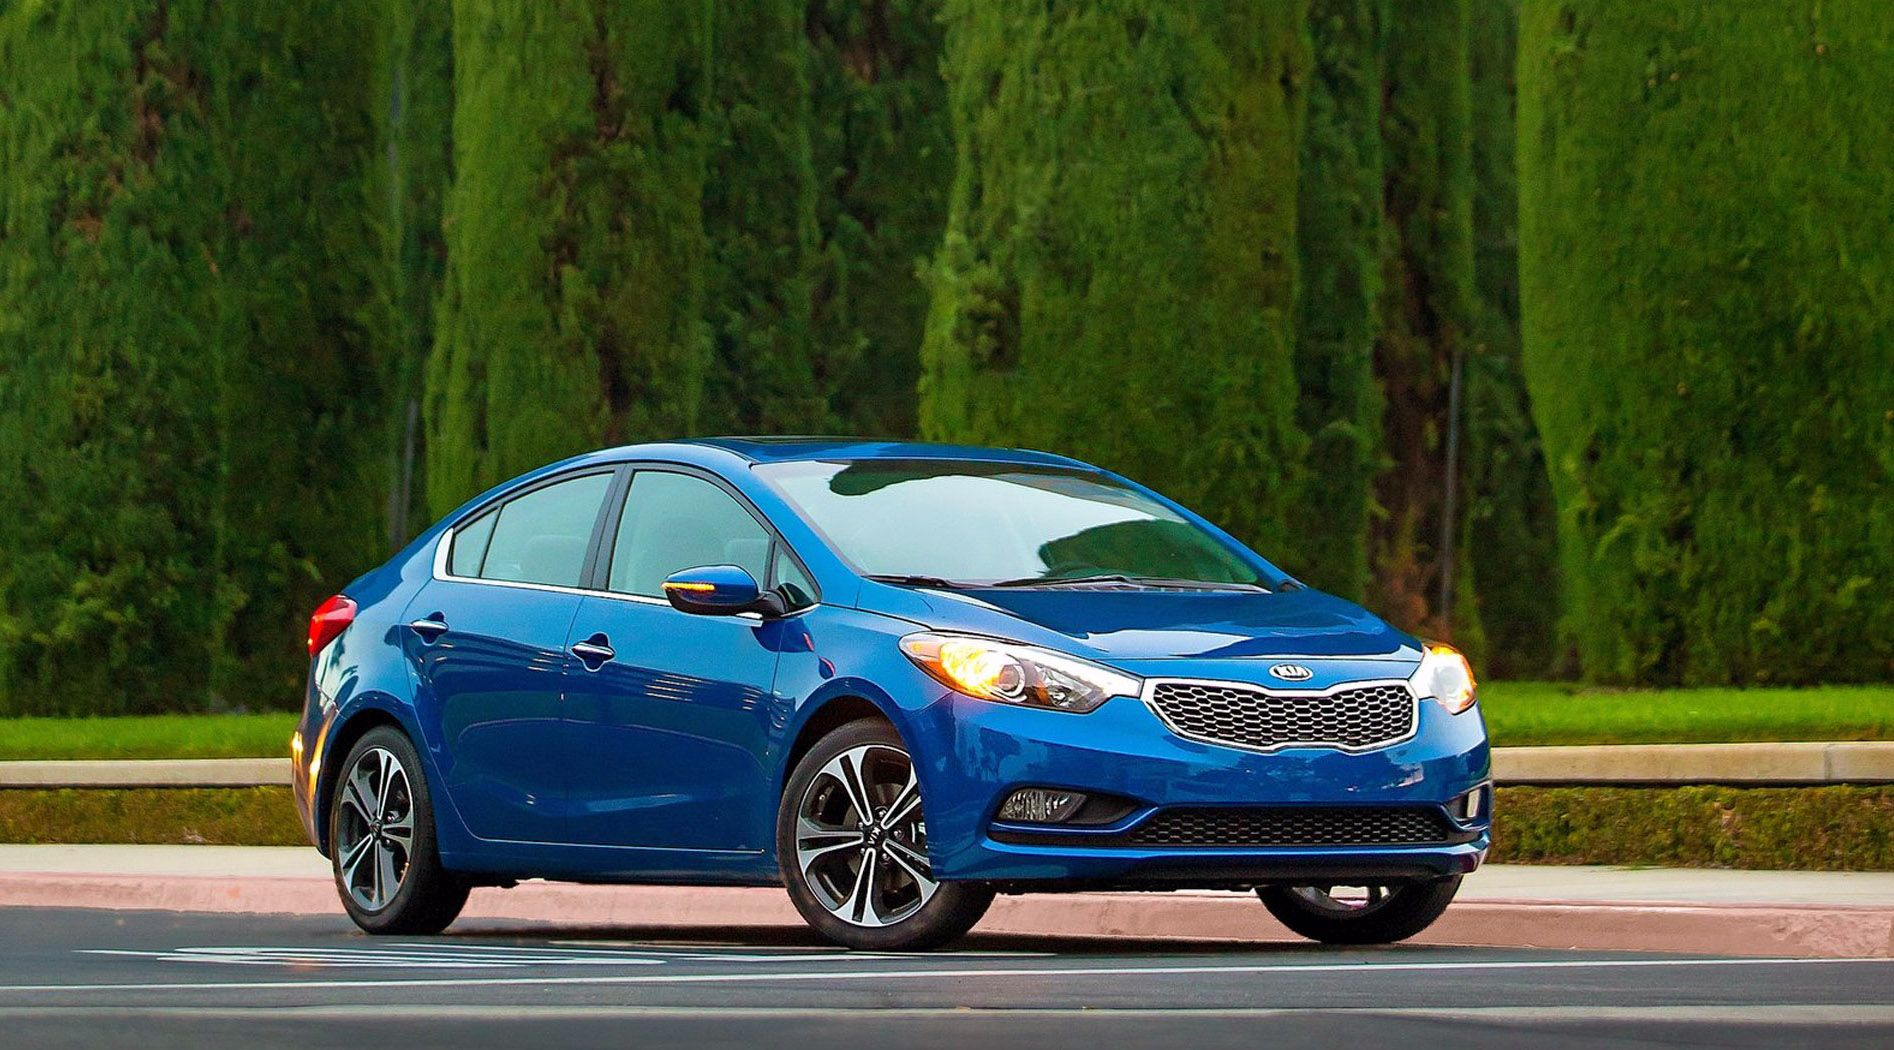 Pin On New Car 2012 2015 News Reviews Specs Wallpaper Concept And Prices